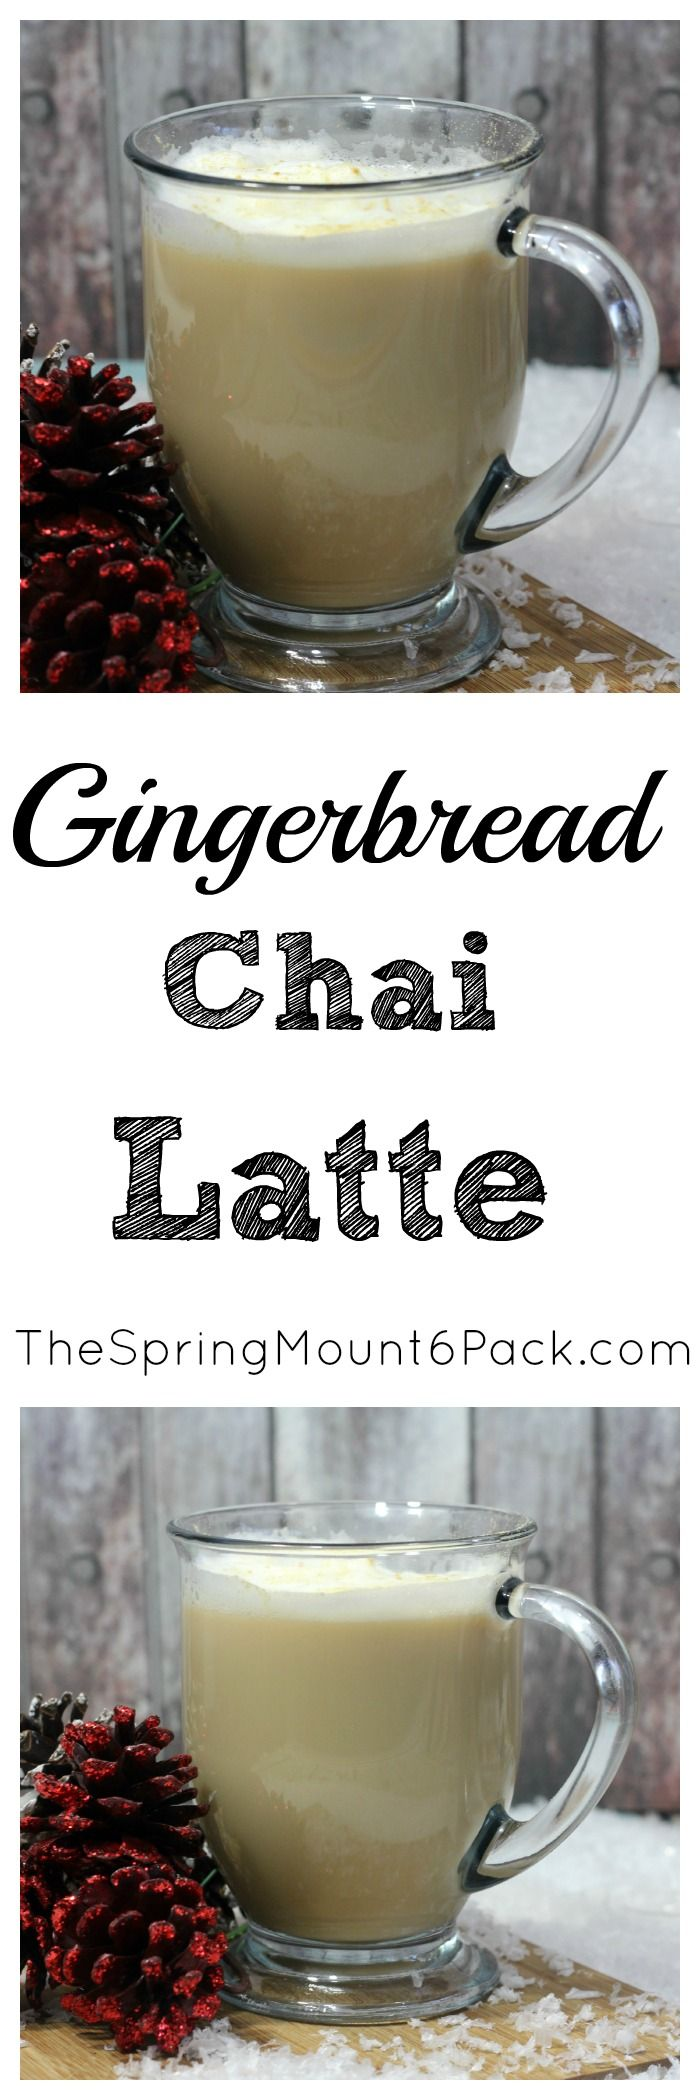 Whether you are looking for a special drink for Christmas, or want a chai latte recipe, you will love this Gingerbread Chai latte  via @debitalks